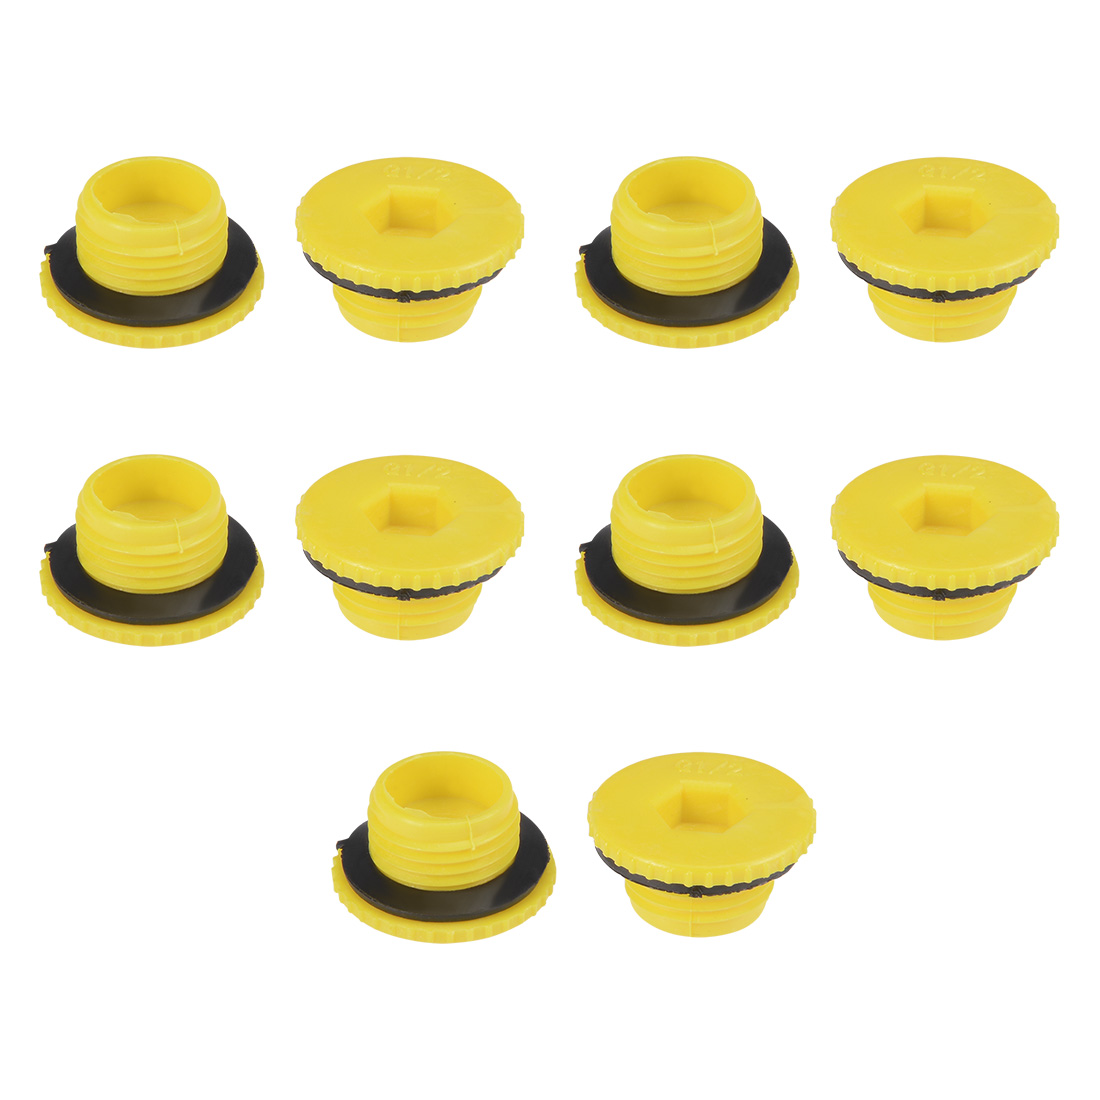 MLD-G1/2 G1/2 Hex Socket Design PE Male Threaded Sealing Cap Yellow 10pcs